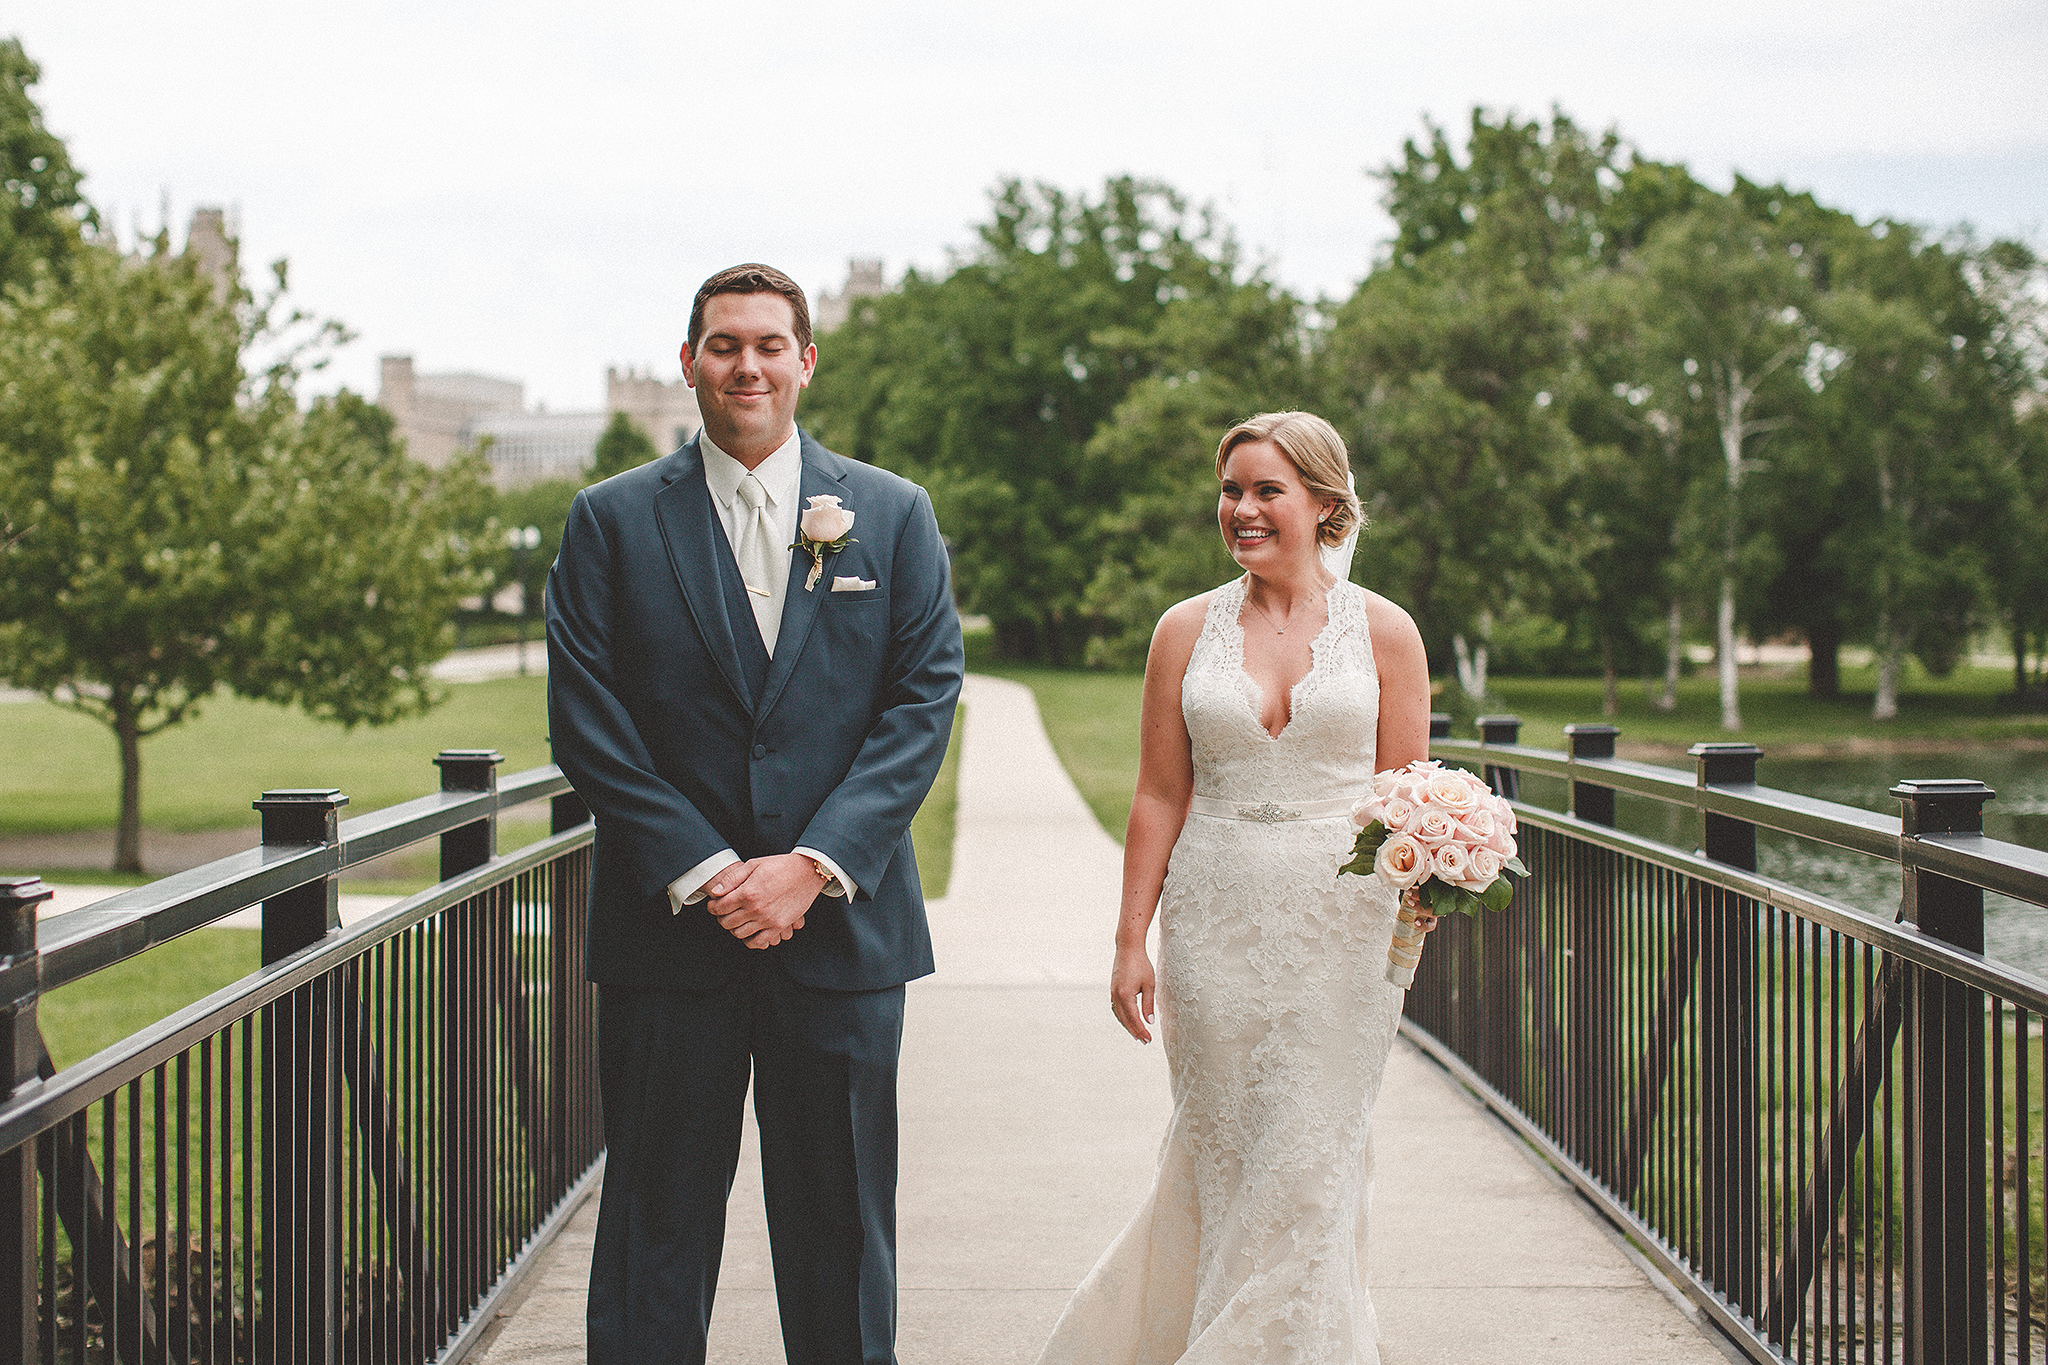 bride and groom's first look | dekalb, Il wedding photographer | chrissy deming